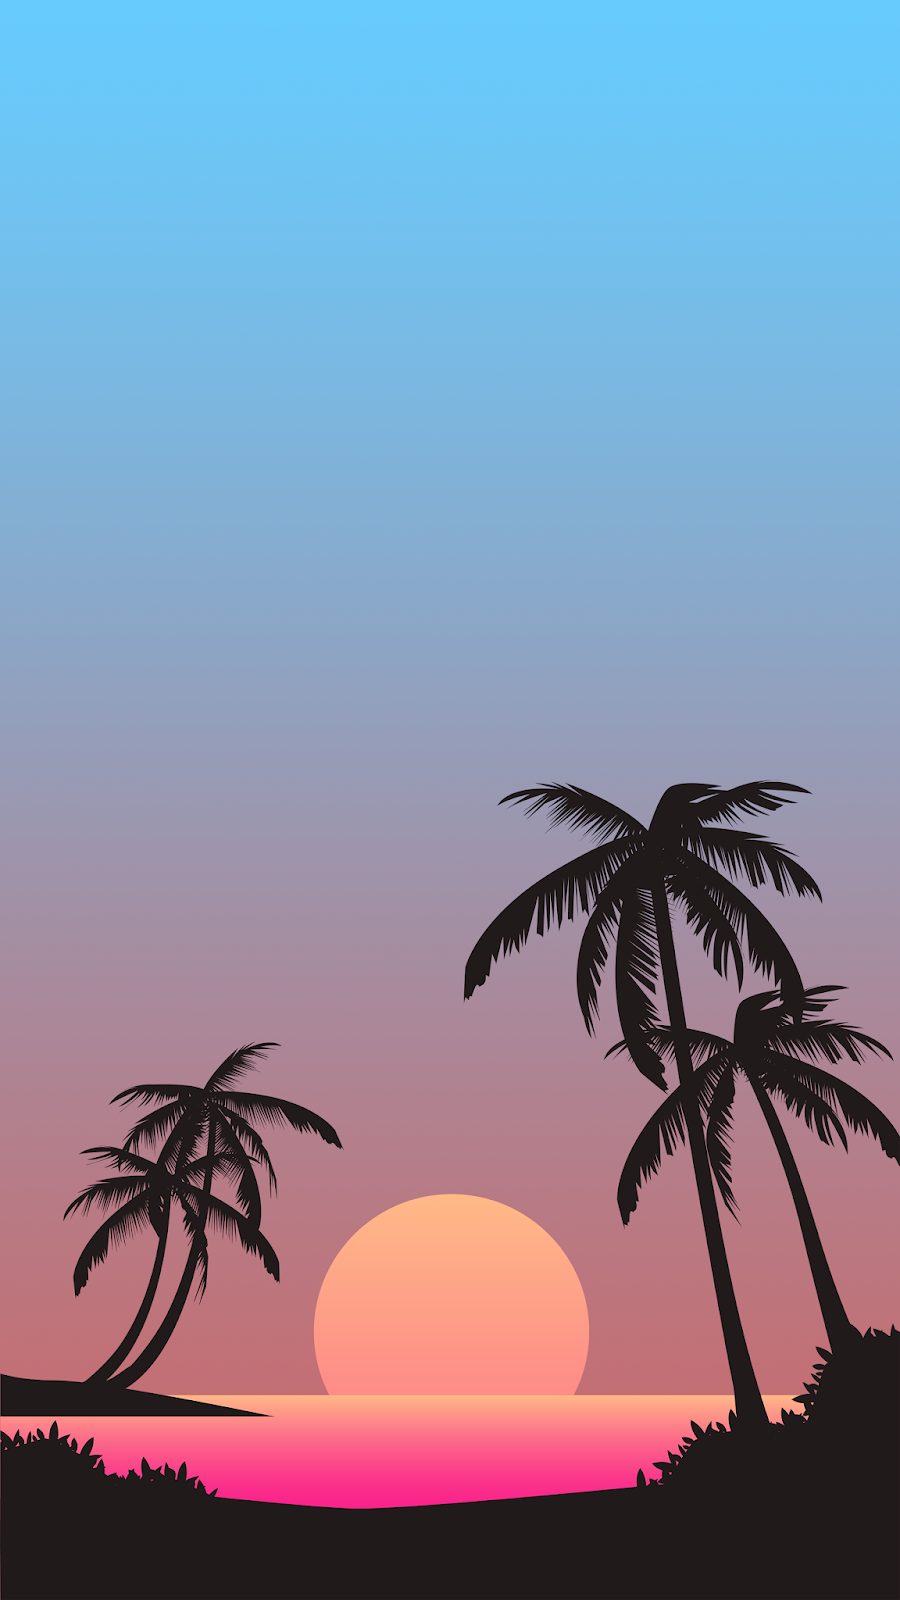 Iphone wallpaper hd